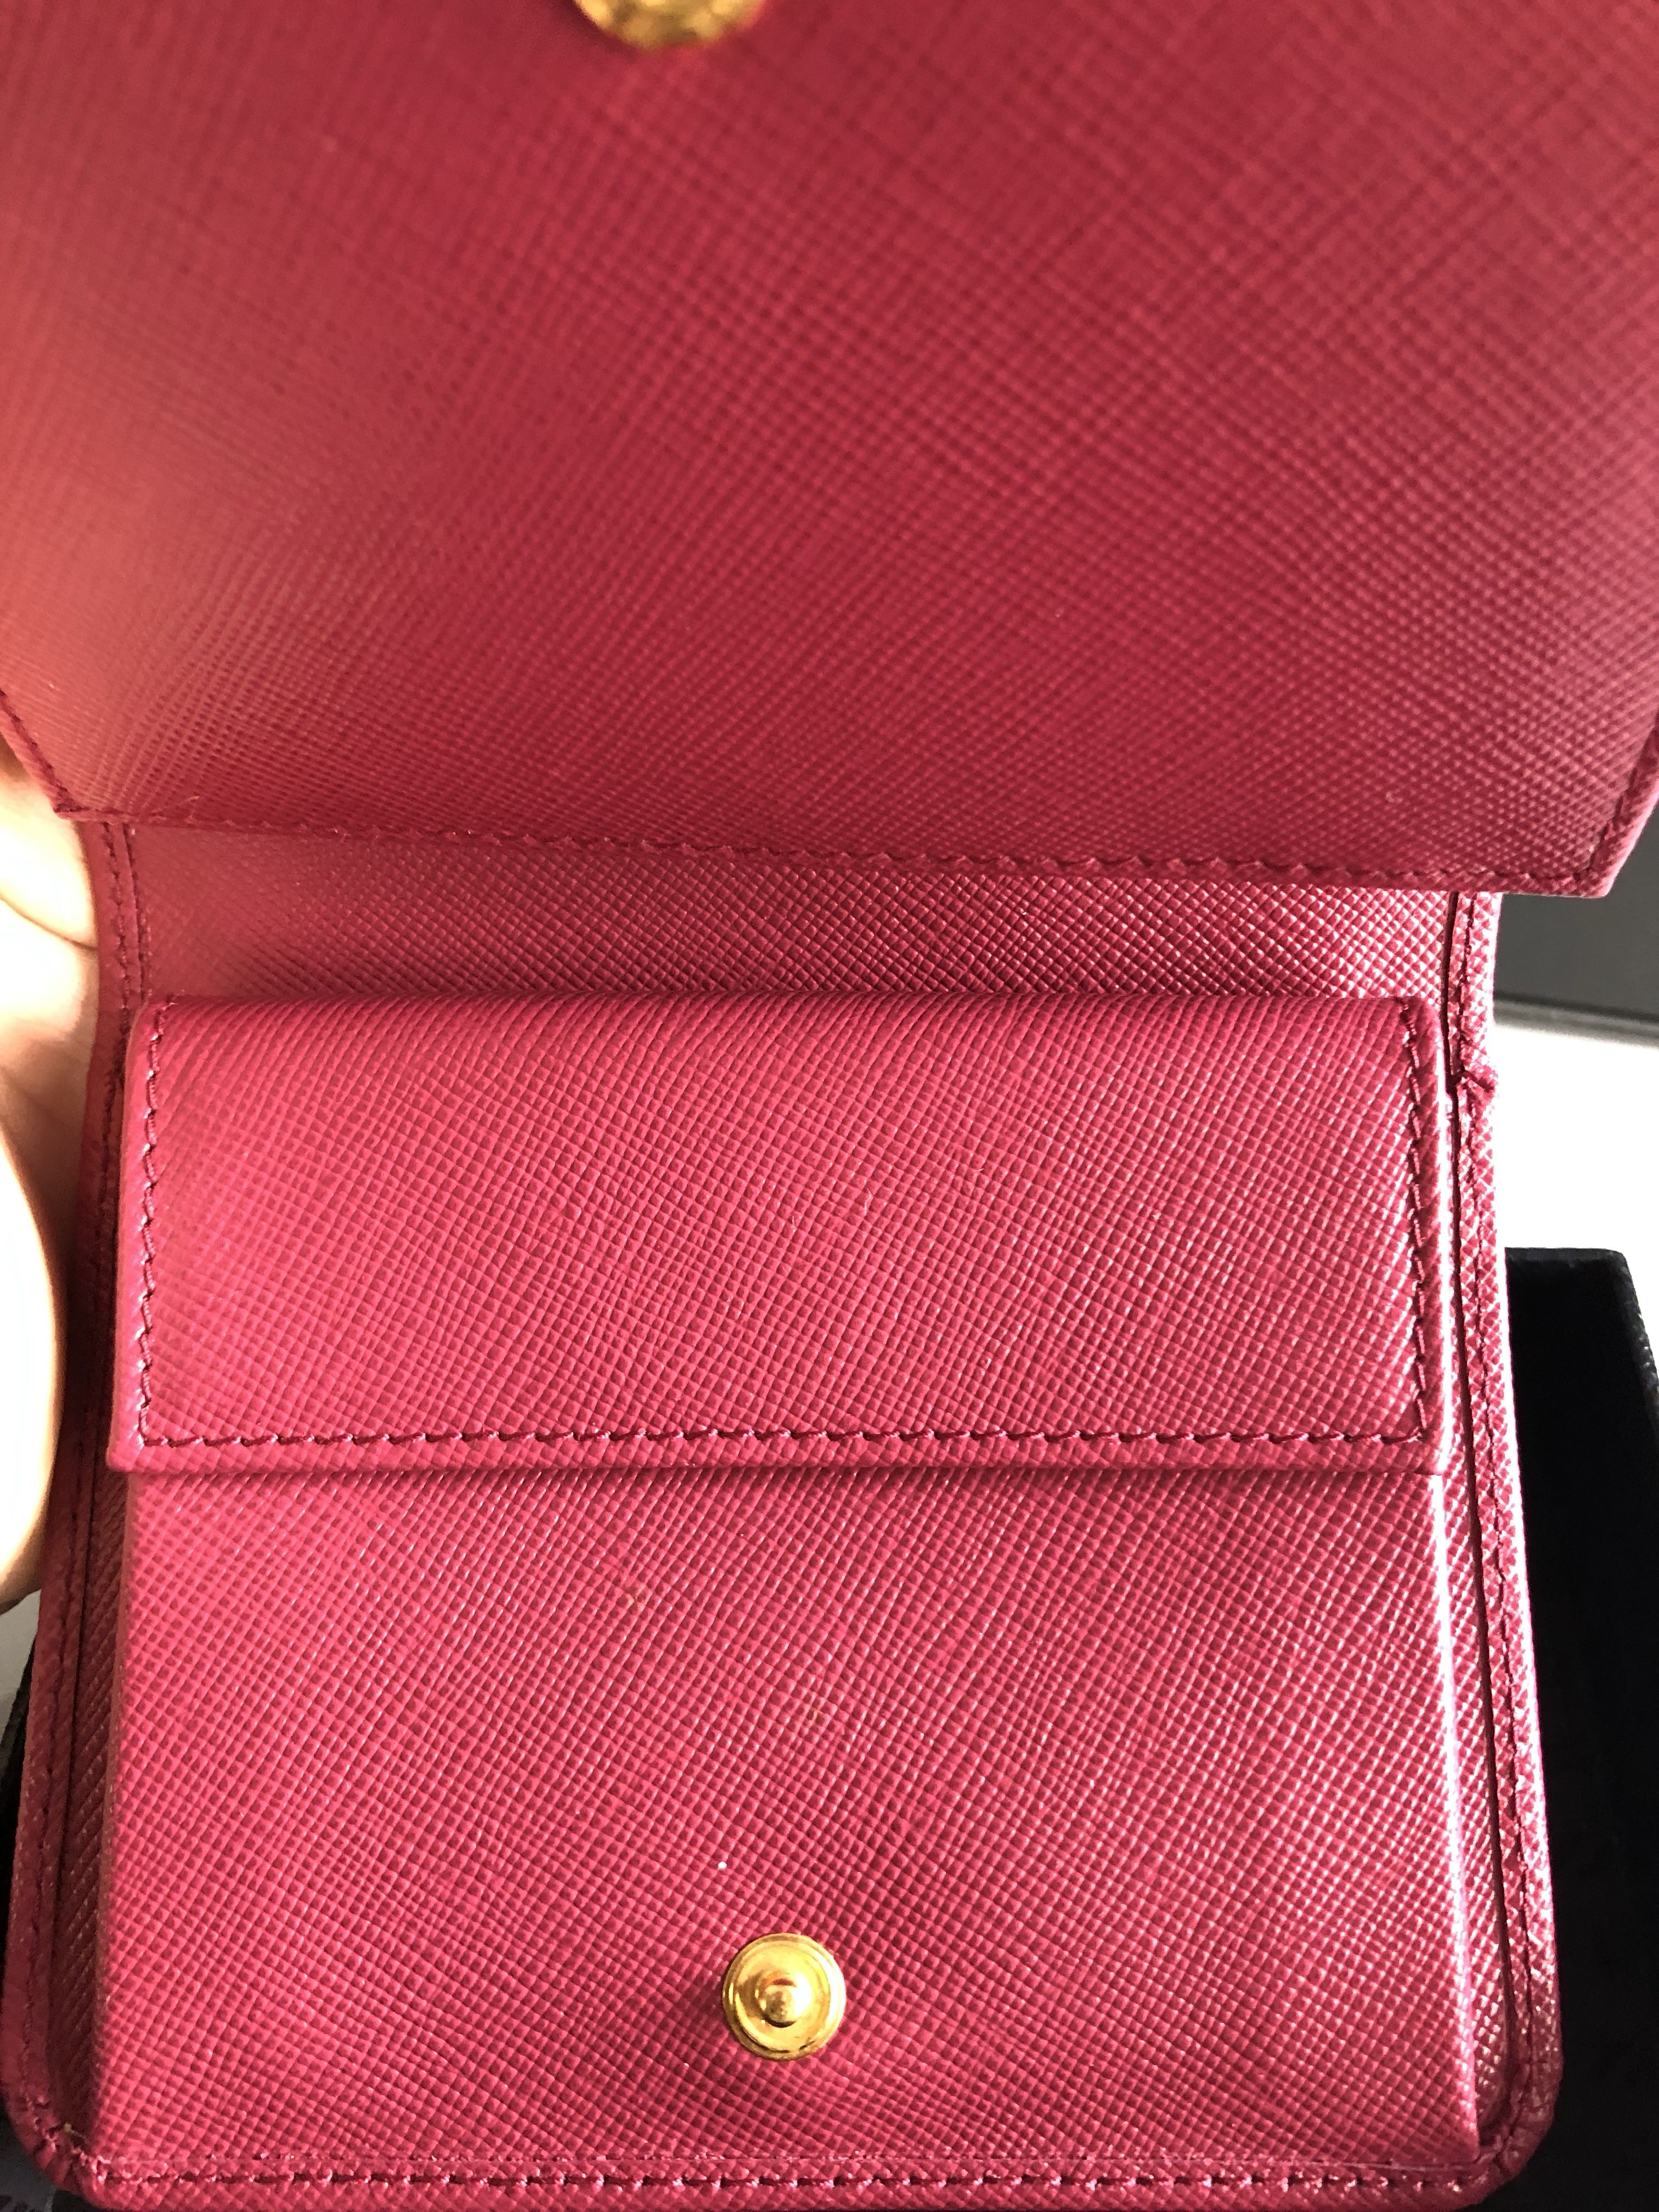 23967d080f9c2e Prada Saffiano Short Trifold Wallet (Ibisco), Luxury, Bags & Wallets,  Wallets on Carousell